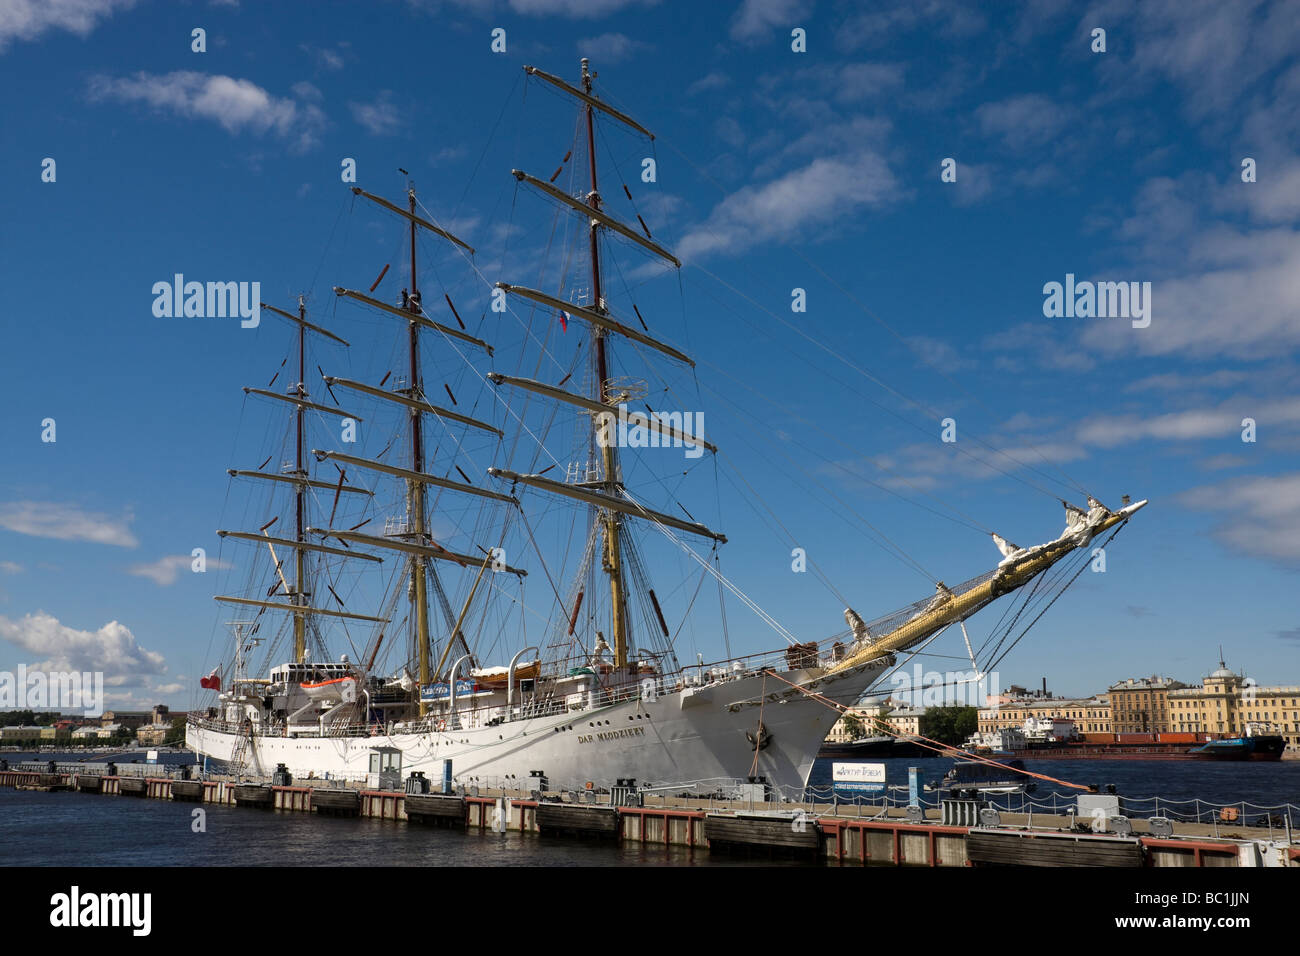 Polish sail ship DAR MLODZIEZY during the stay in St Petersburg Russia 21 06 2009 - Stock Image